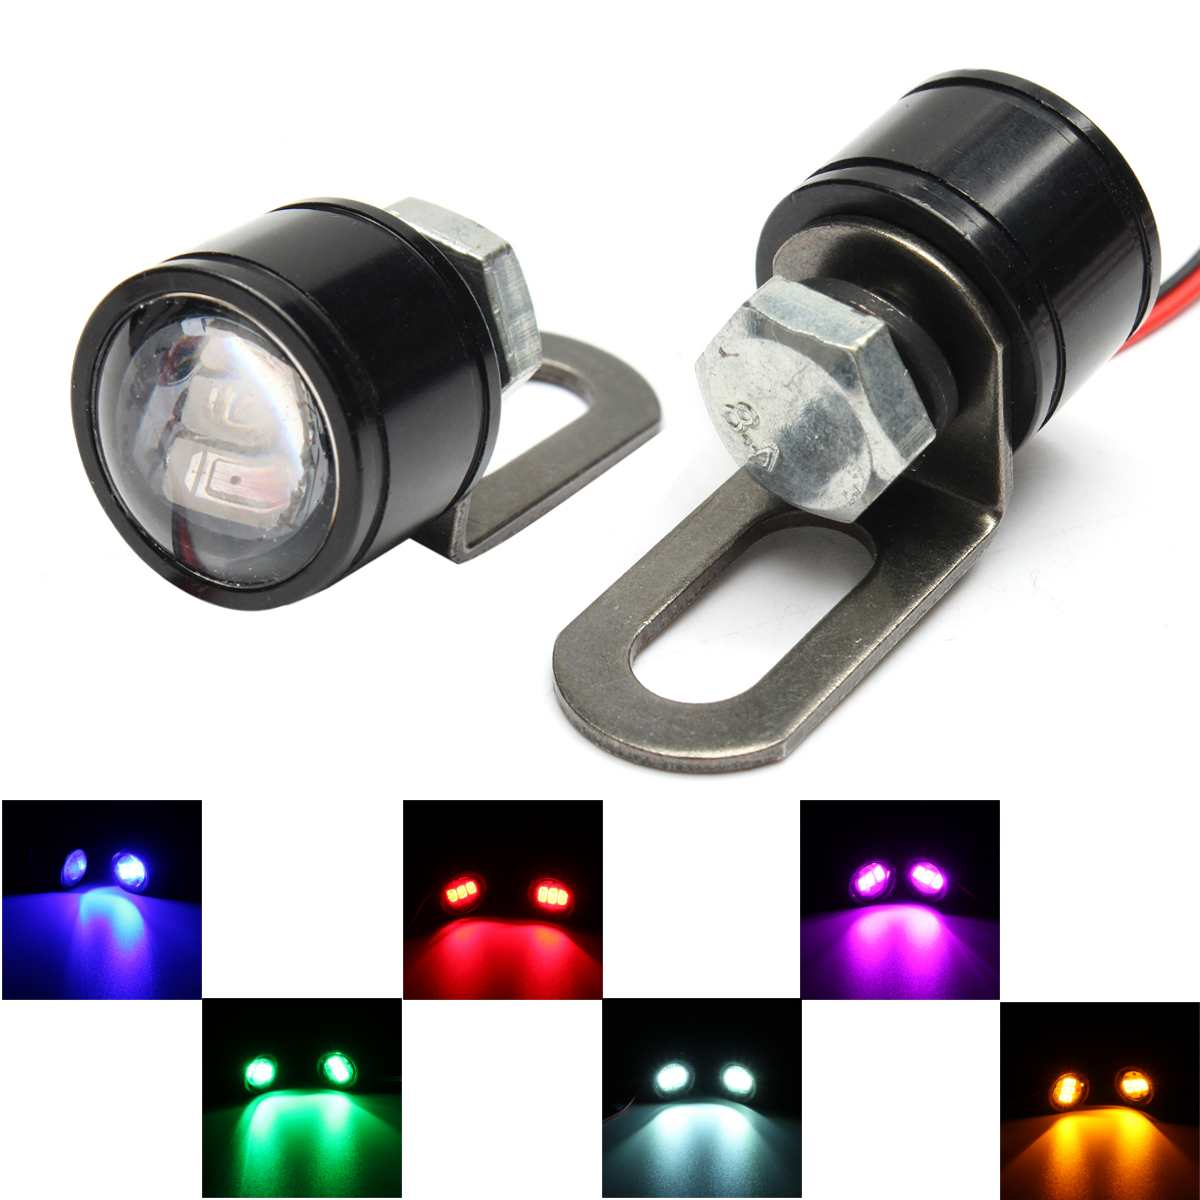 Pair Motorcycle LED Light Bulbs 12V Rearview Mirror Flashing Blinker Lamps 3LED Lamp Bulb Universal